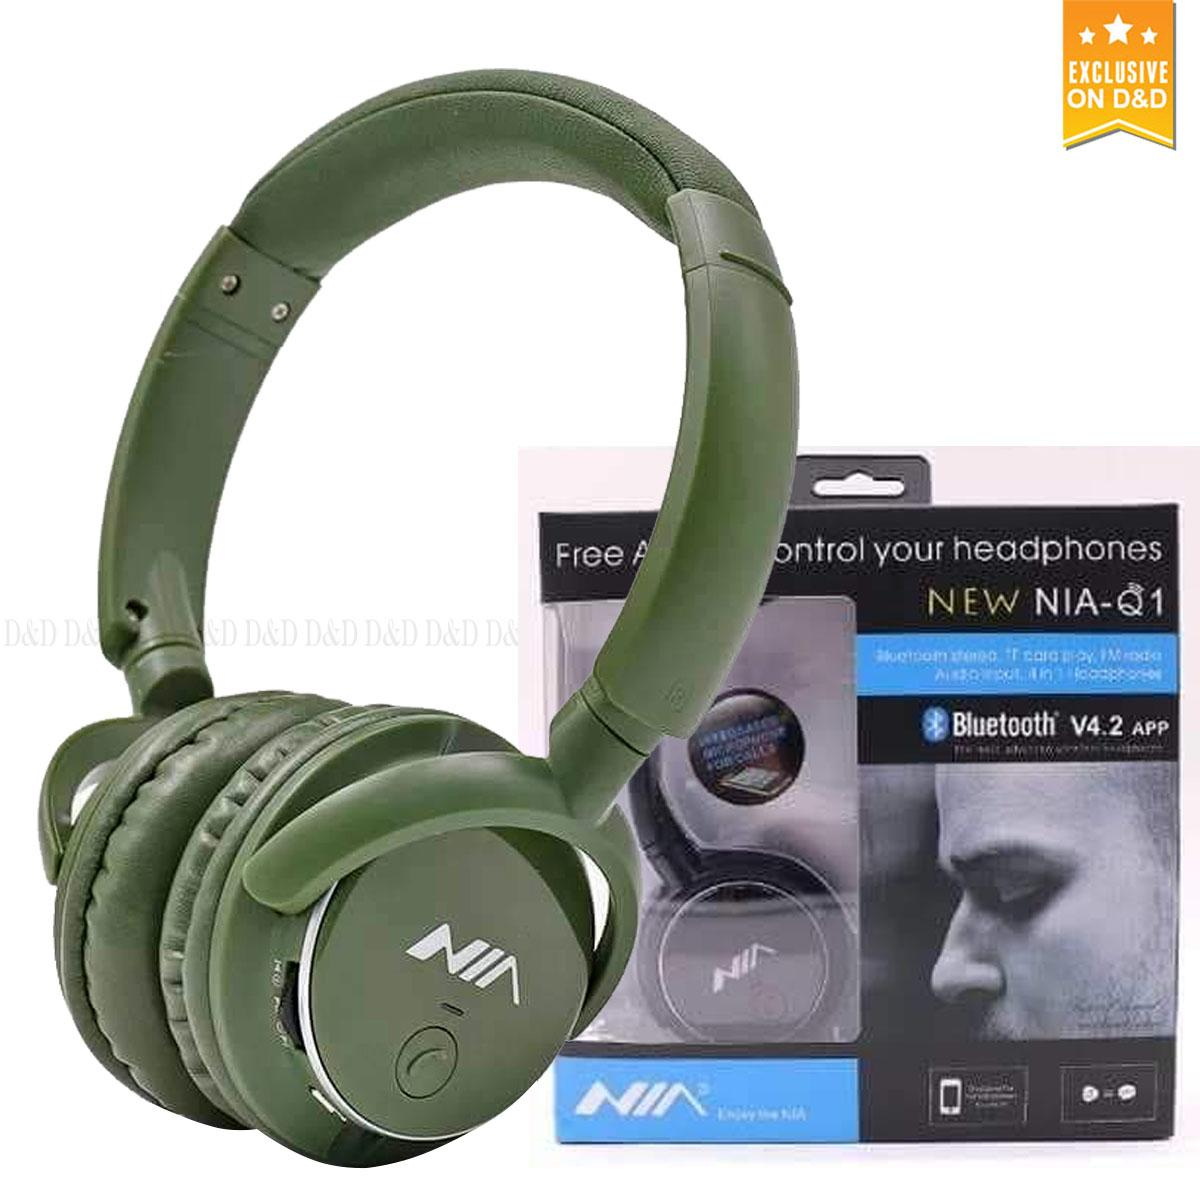 Nia Q1 Bluetooth Headsets with Micro SD and AUX Slot/FM Radio